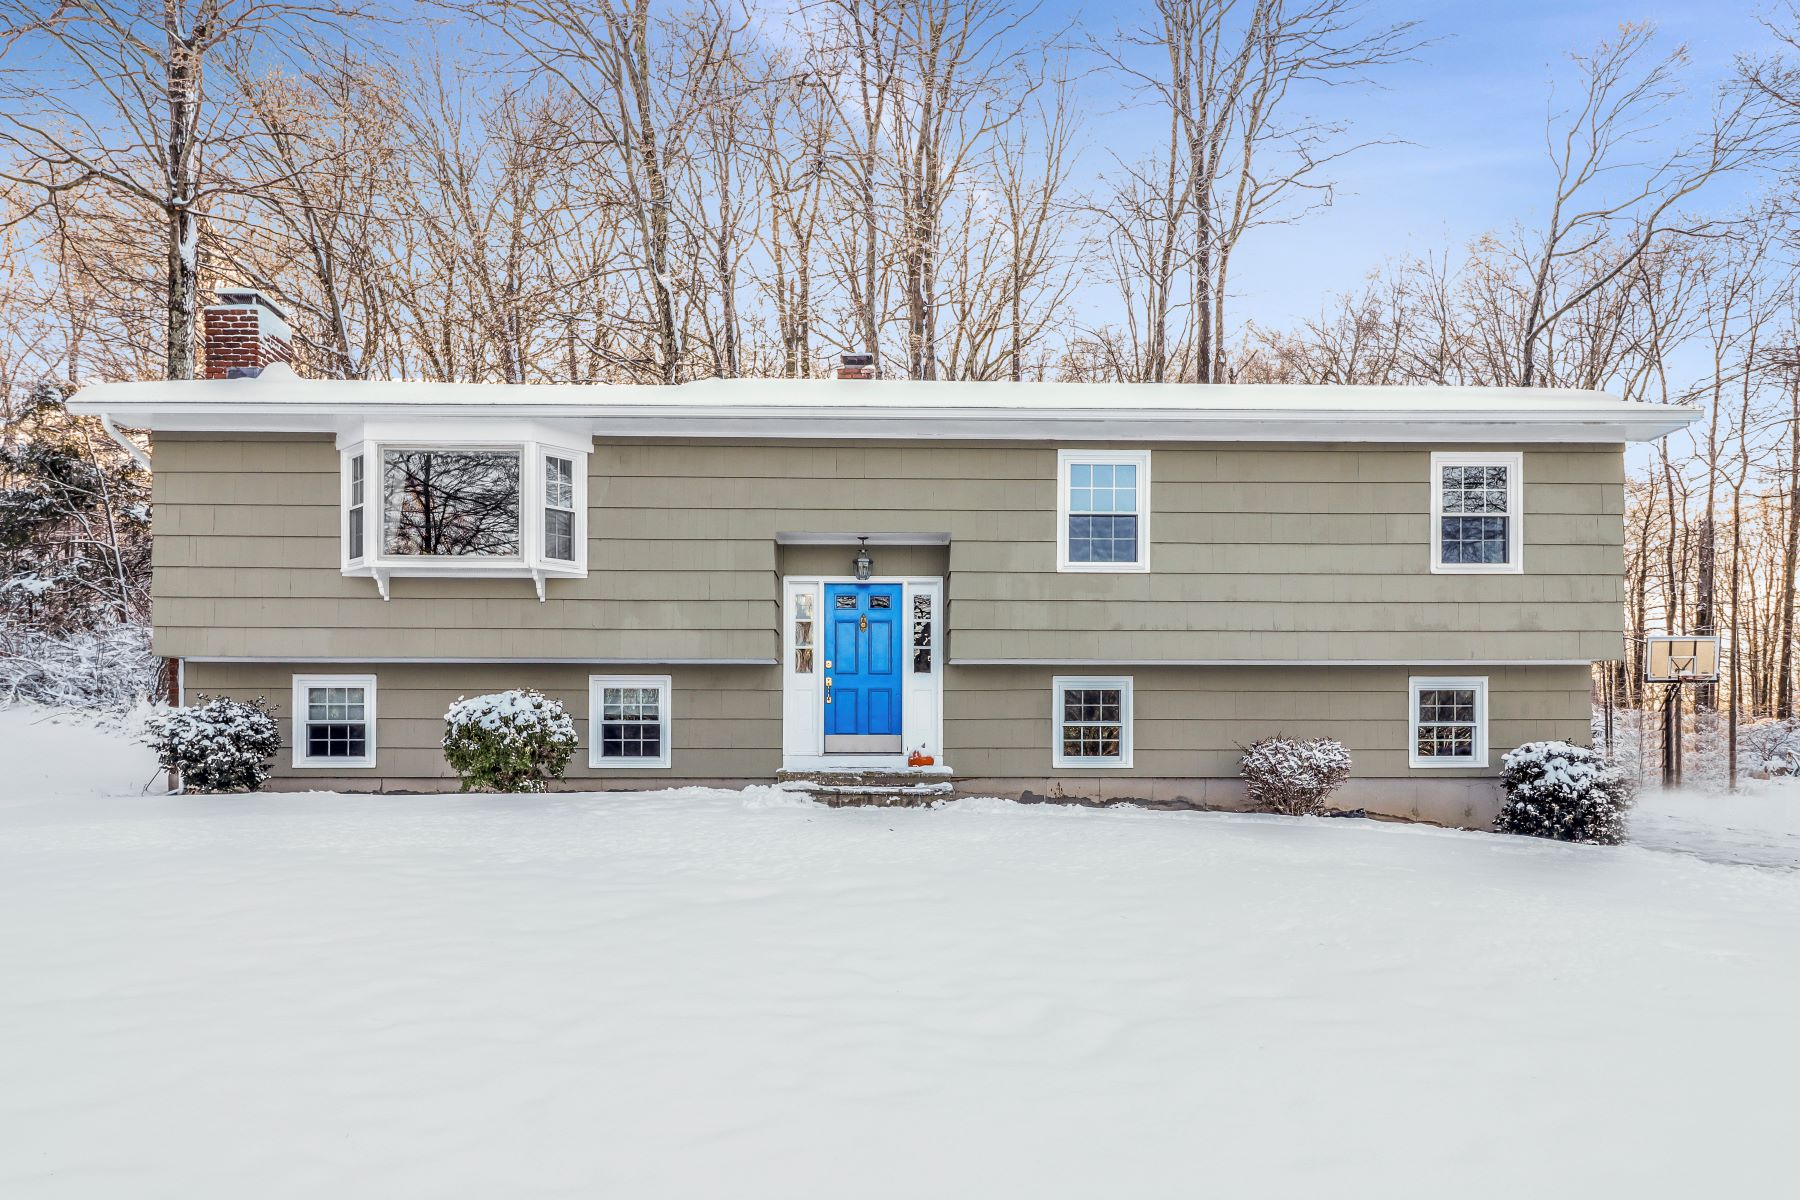 Single Family Homes for Active at Charming Raised Ranch 222 Oak Hill Drive Southbury, Connecticut 06488 United States